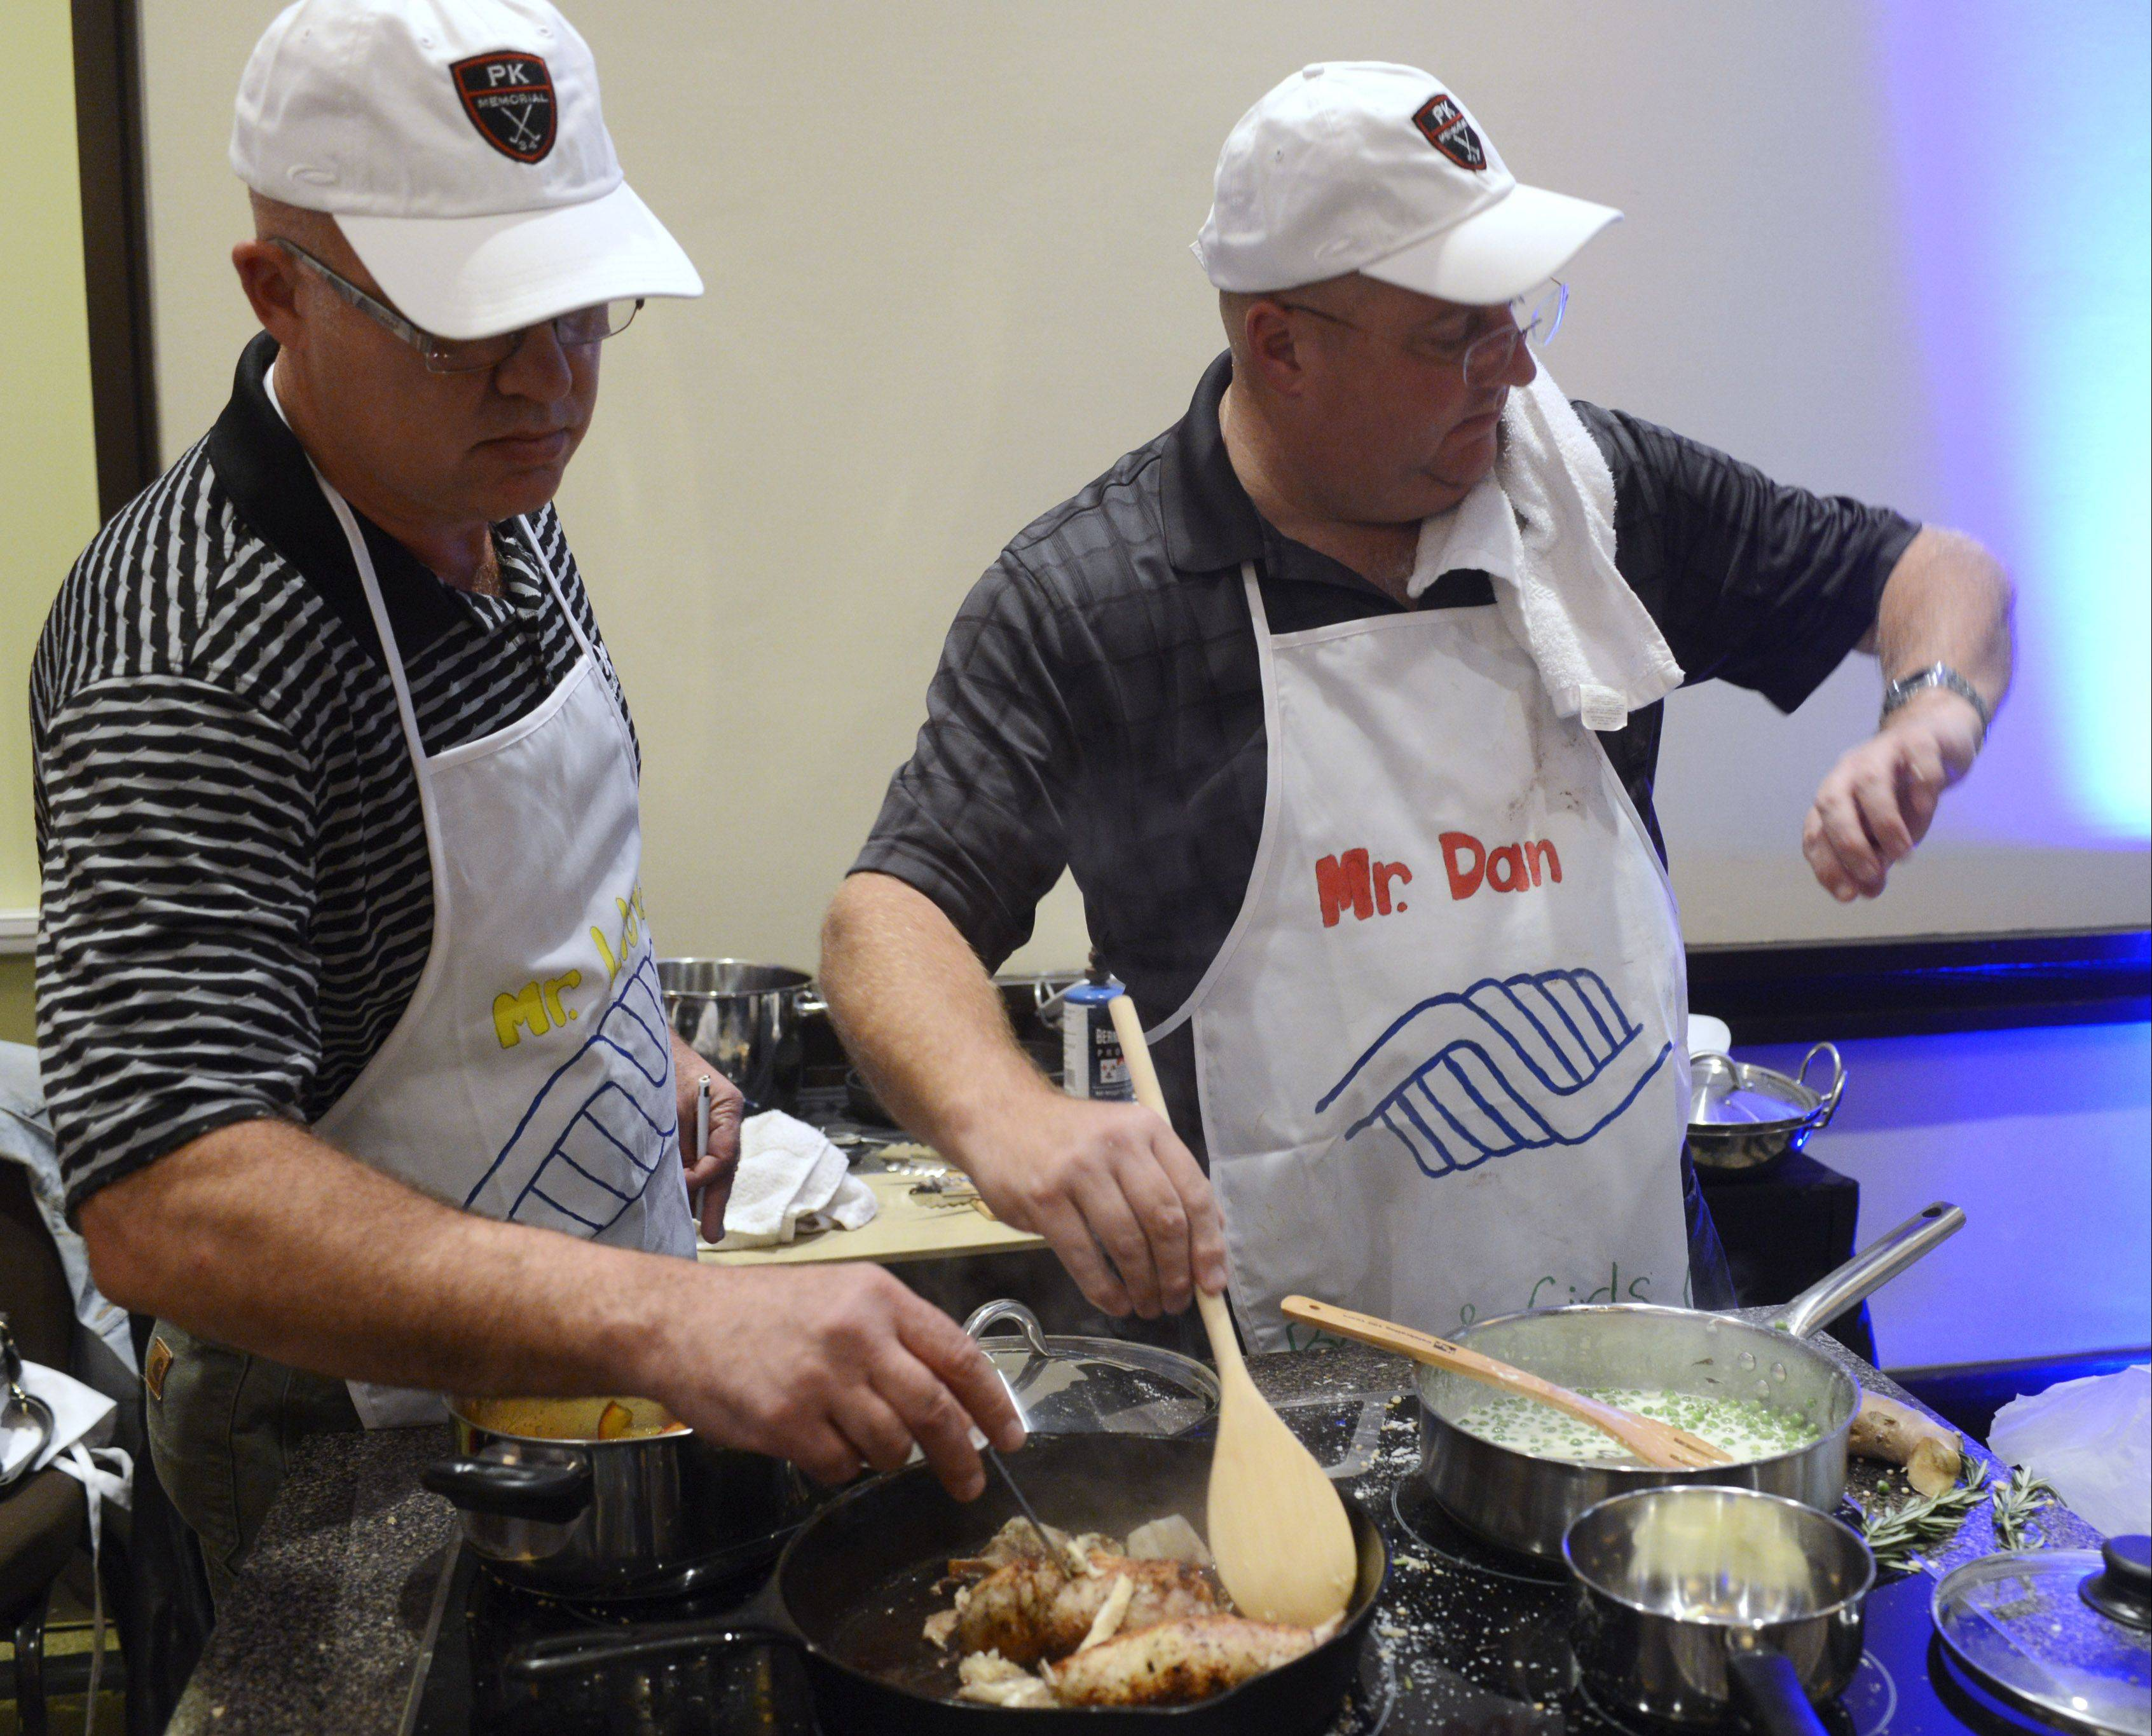 Cook of the Week Challenge contestant Dan Rich of Elgin, right, checks his watch as the deadline nears for him to plate his dish with the cook-off finals at the Hyatt Regency Schaumburg.